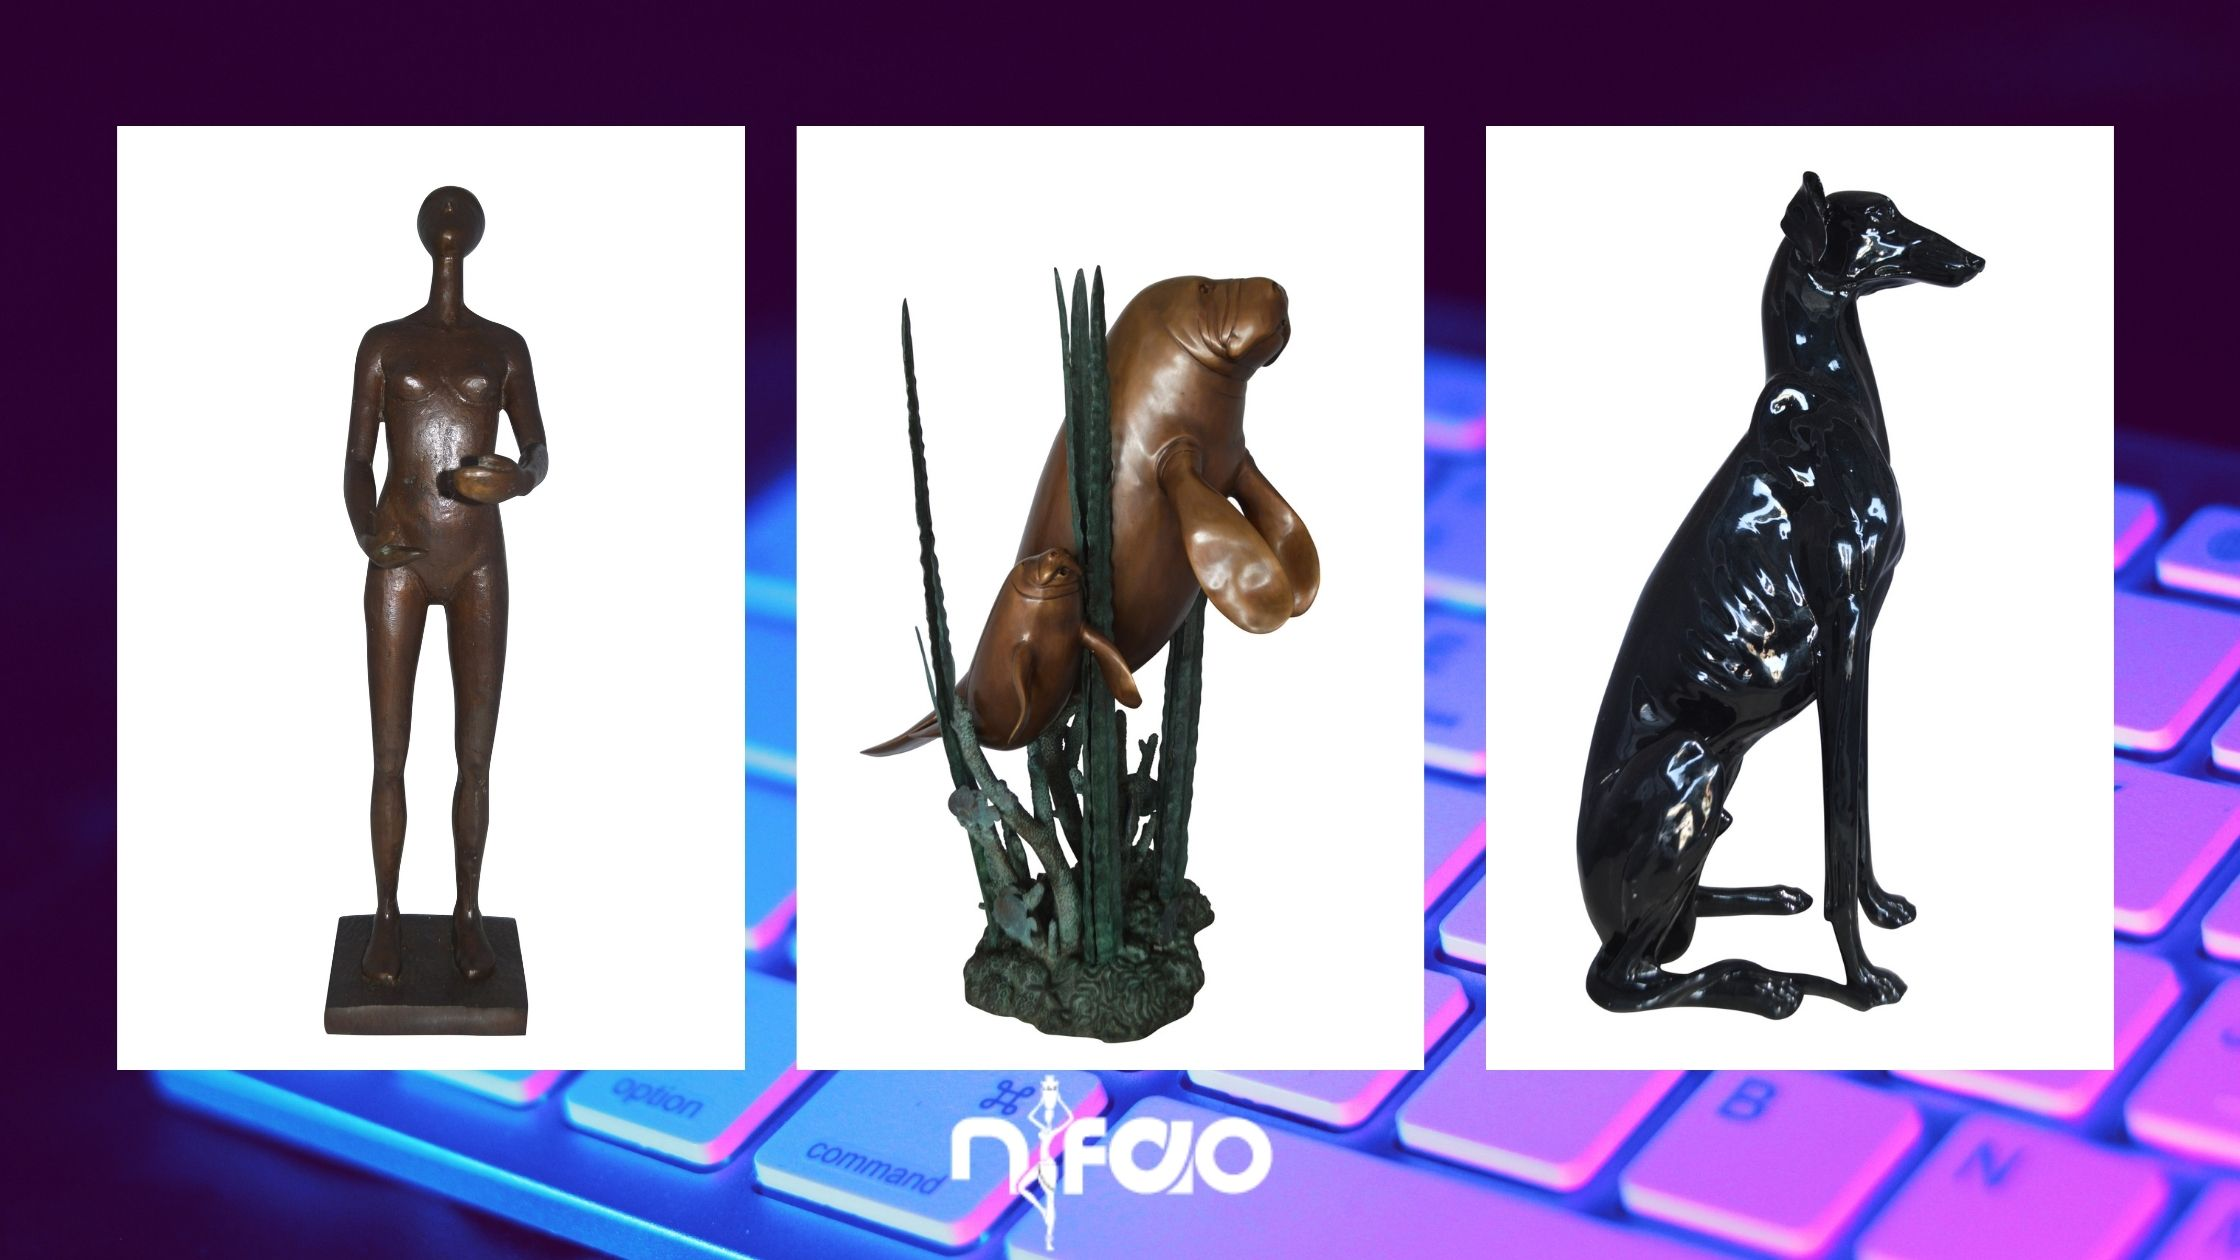 Nifao.Com – The Best Art Shop to Find Bronze Statues And More